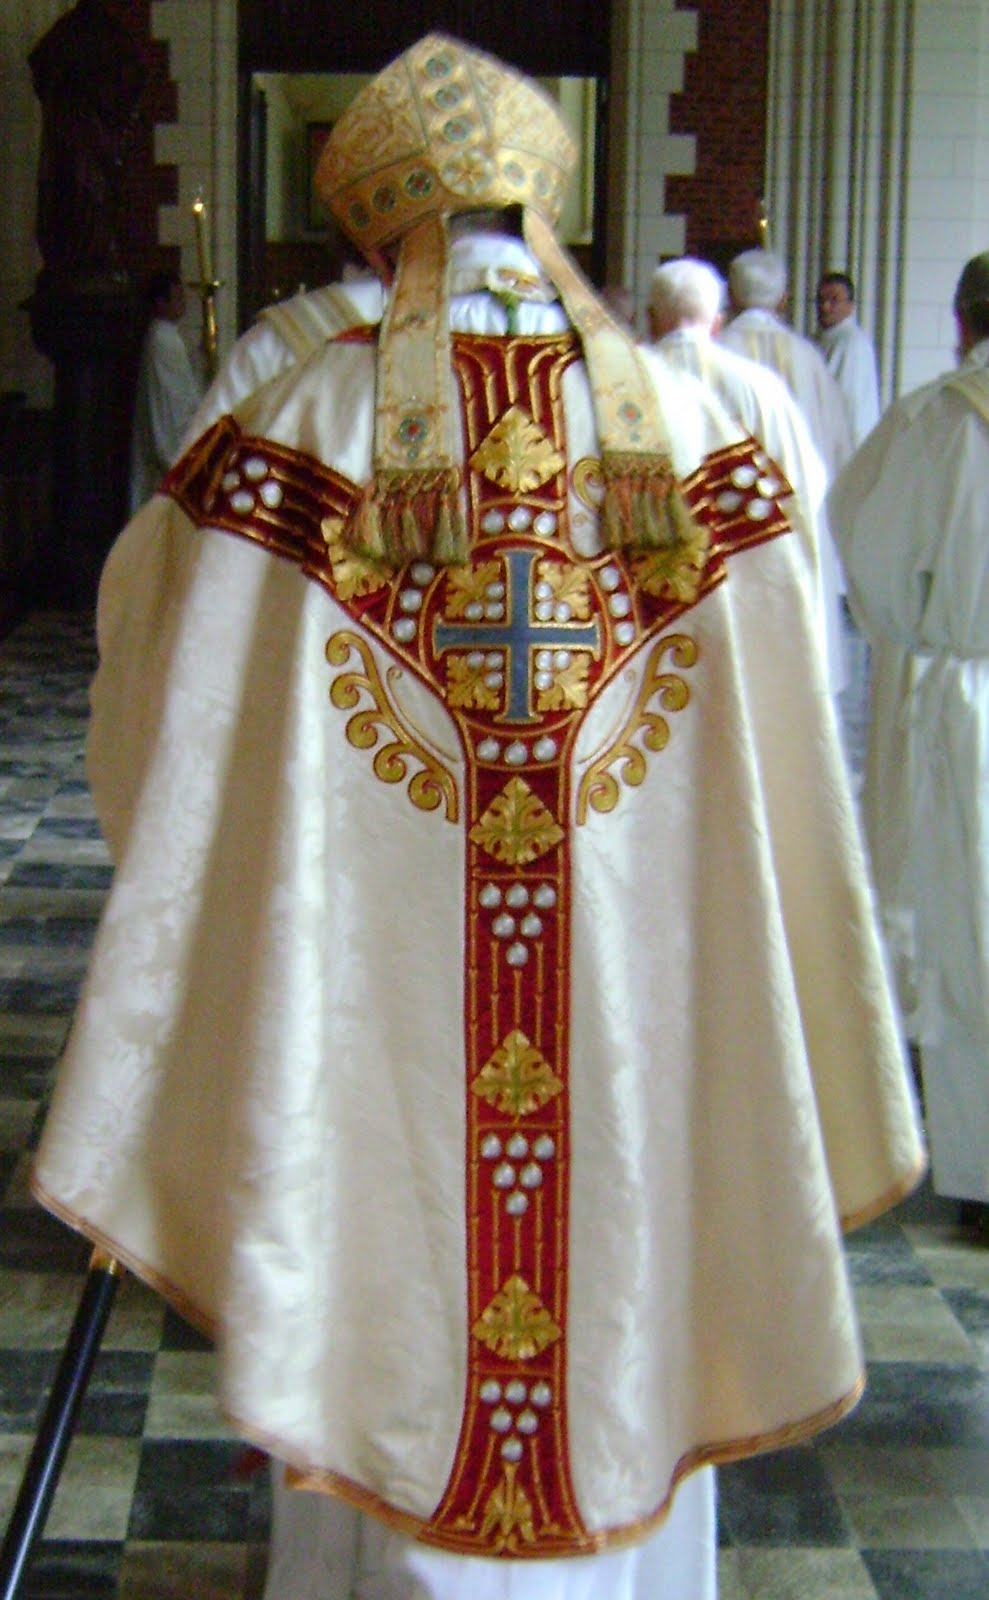 Papal Christian vestment